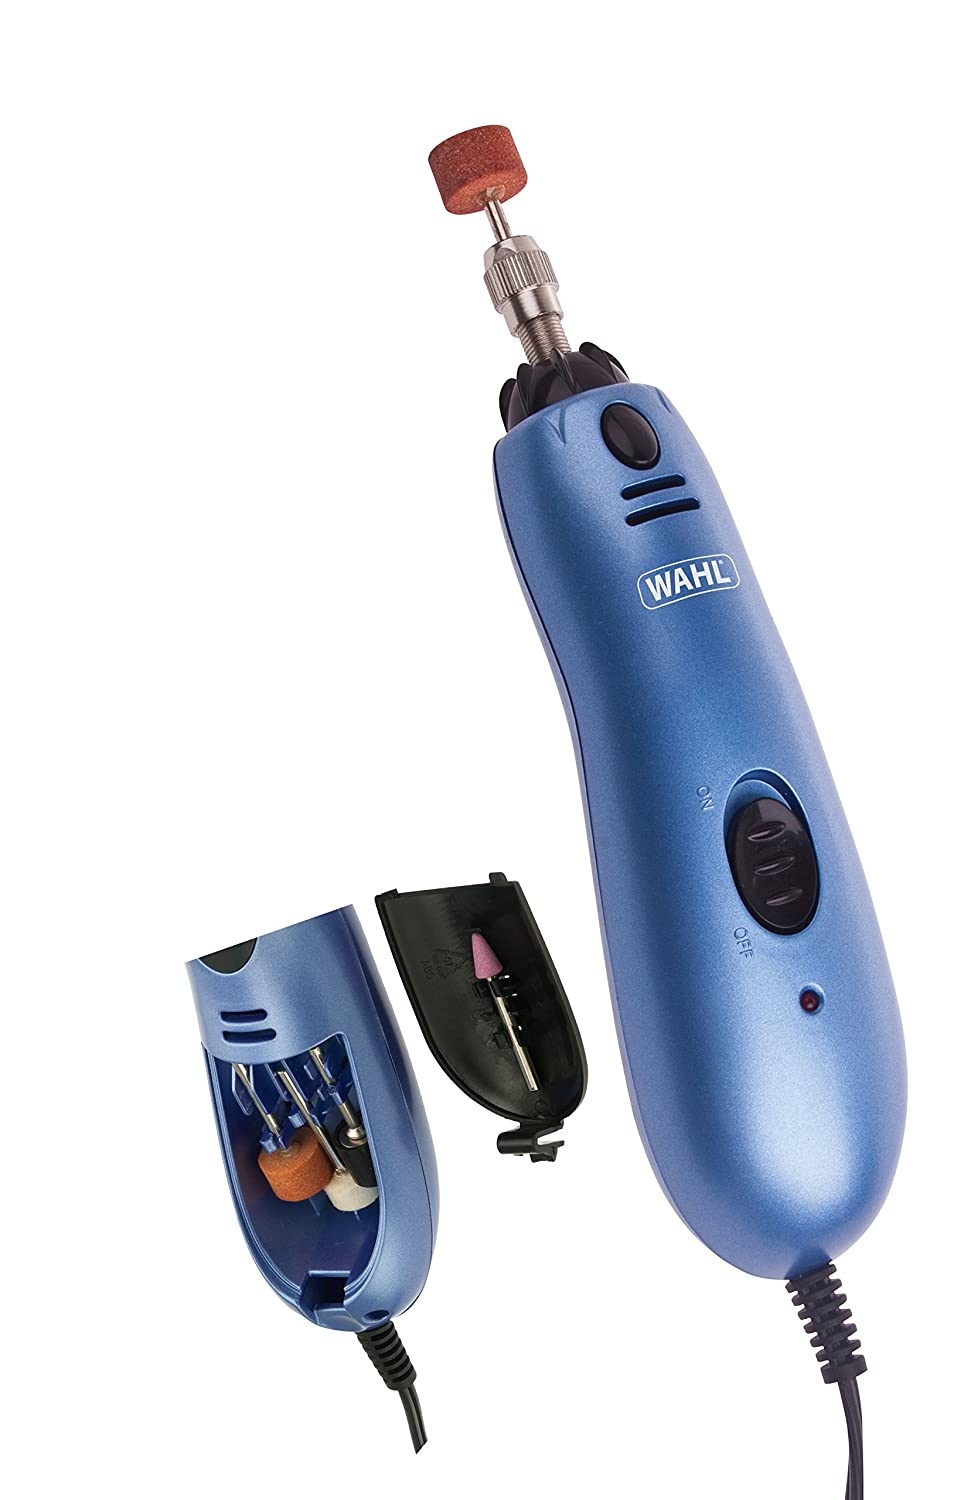 Wahl Pet Nail Grinder - Blue: Amazon.co.uk: Pet Supplies